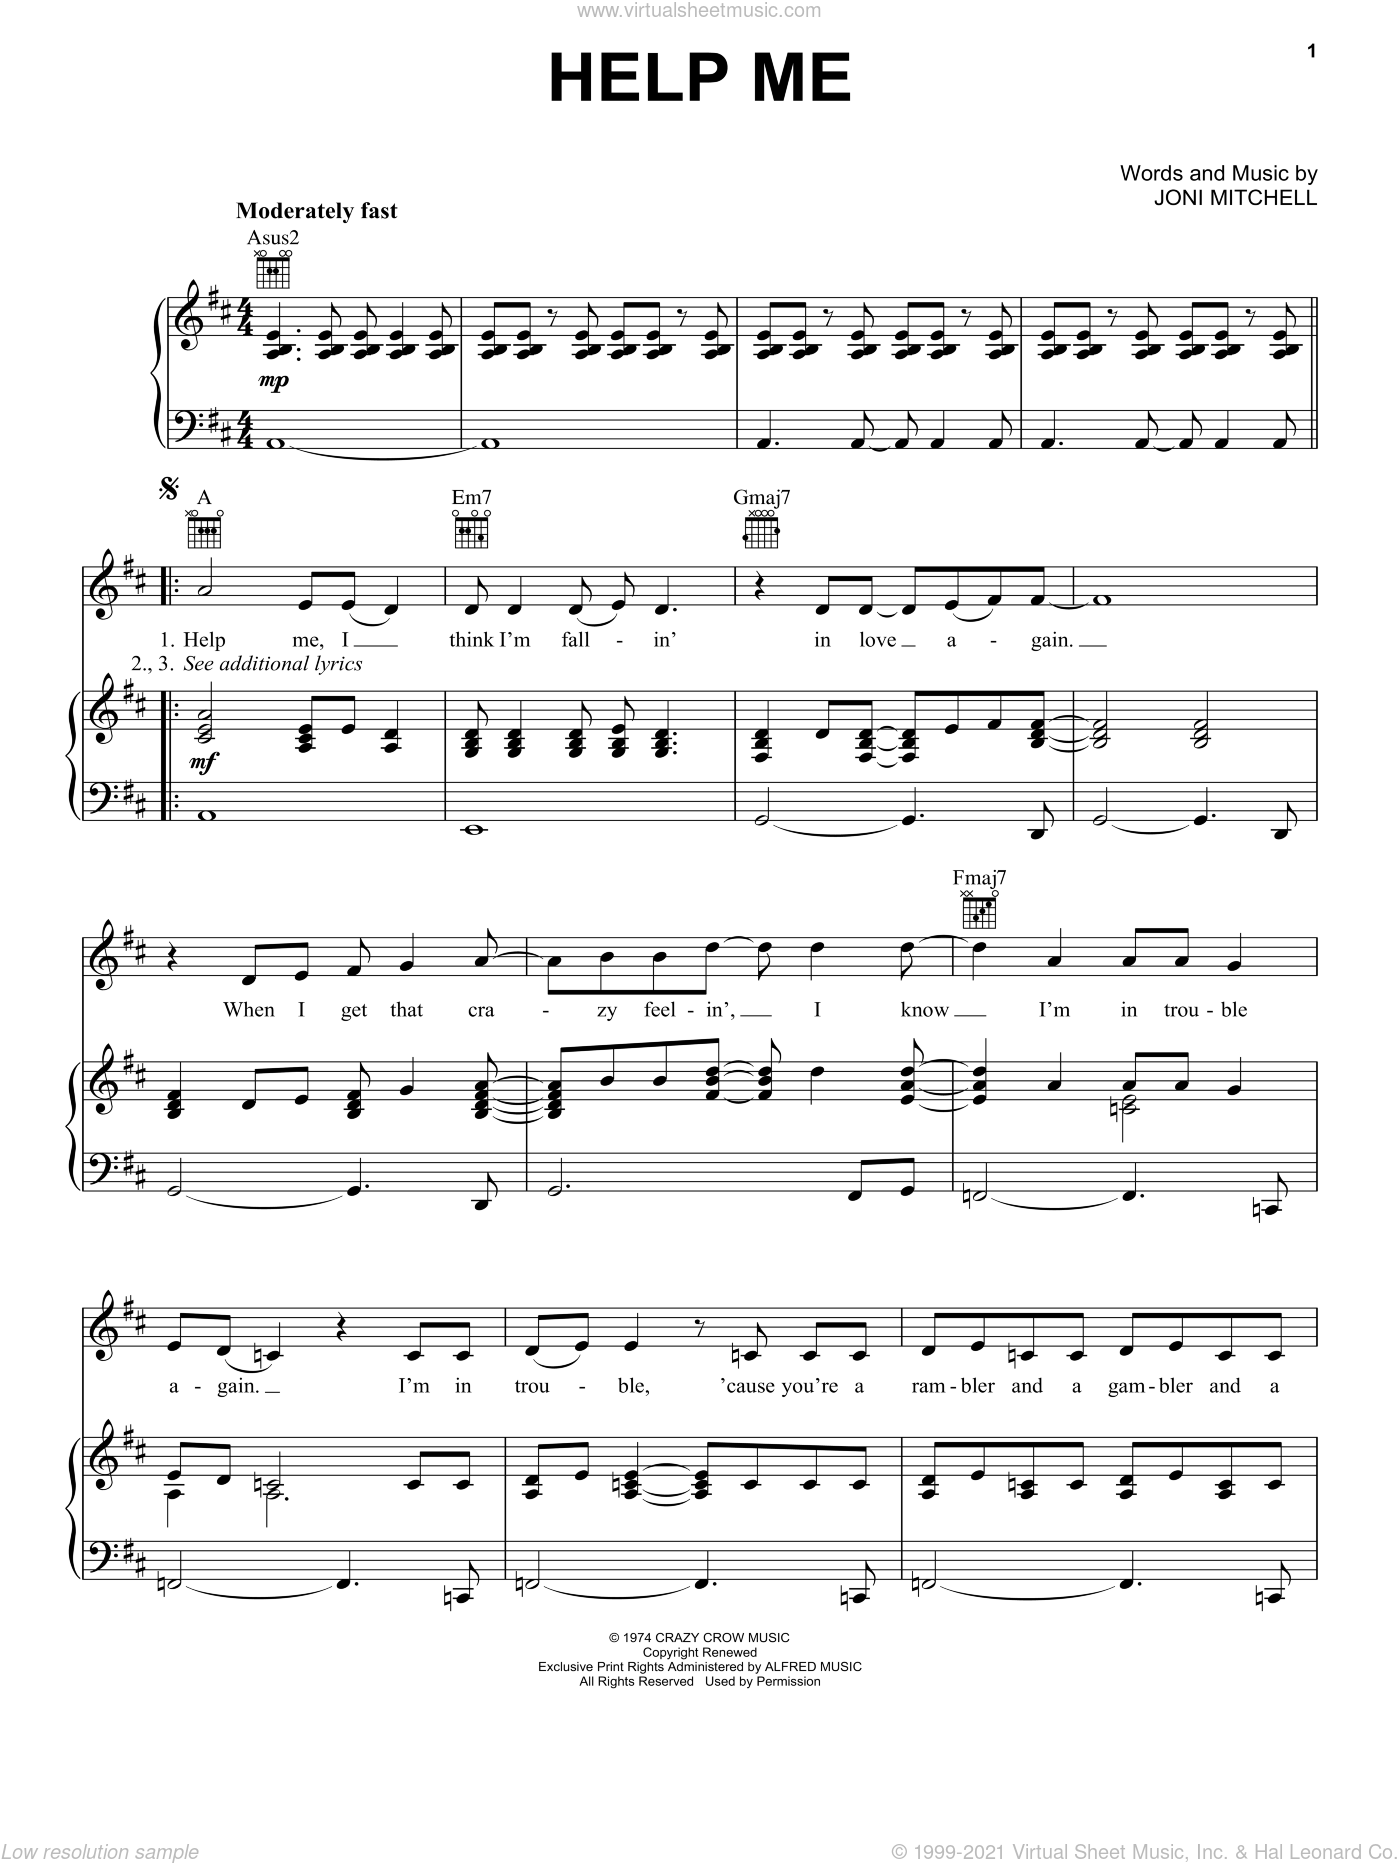 Help Me sheet music for voice, piano or guitar by Joni Mitchell, intermediate skill level